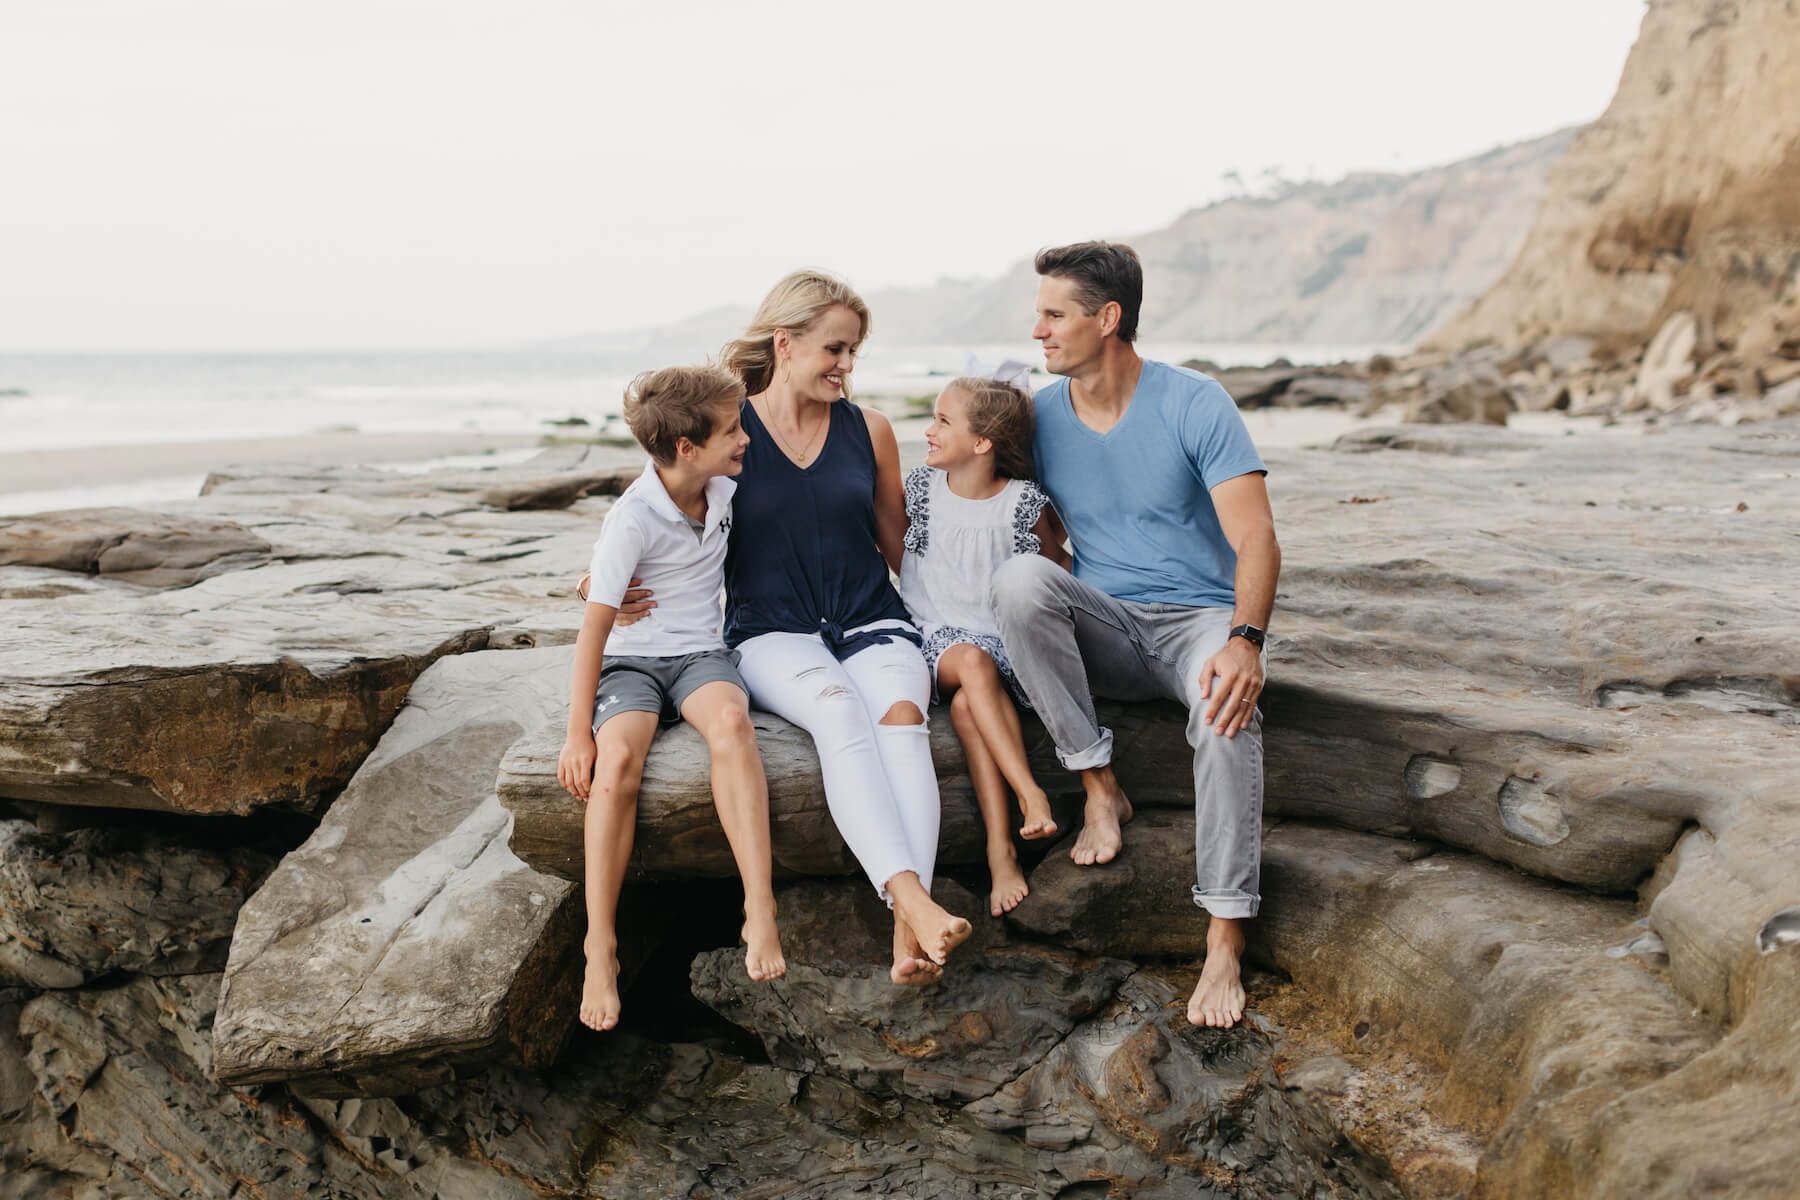 Fun family Vacation Ideas For Your San Diego Trip